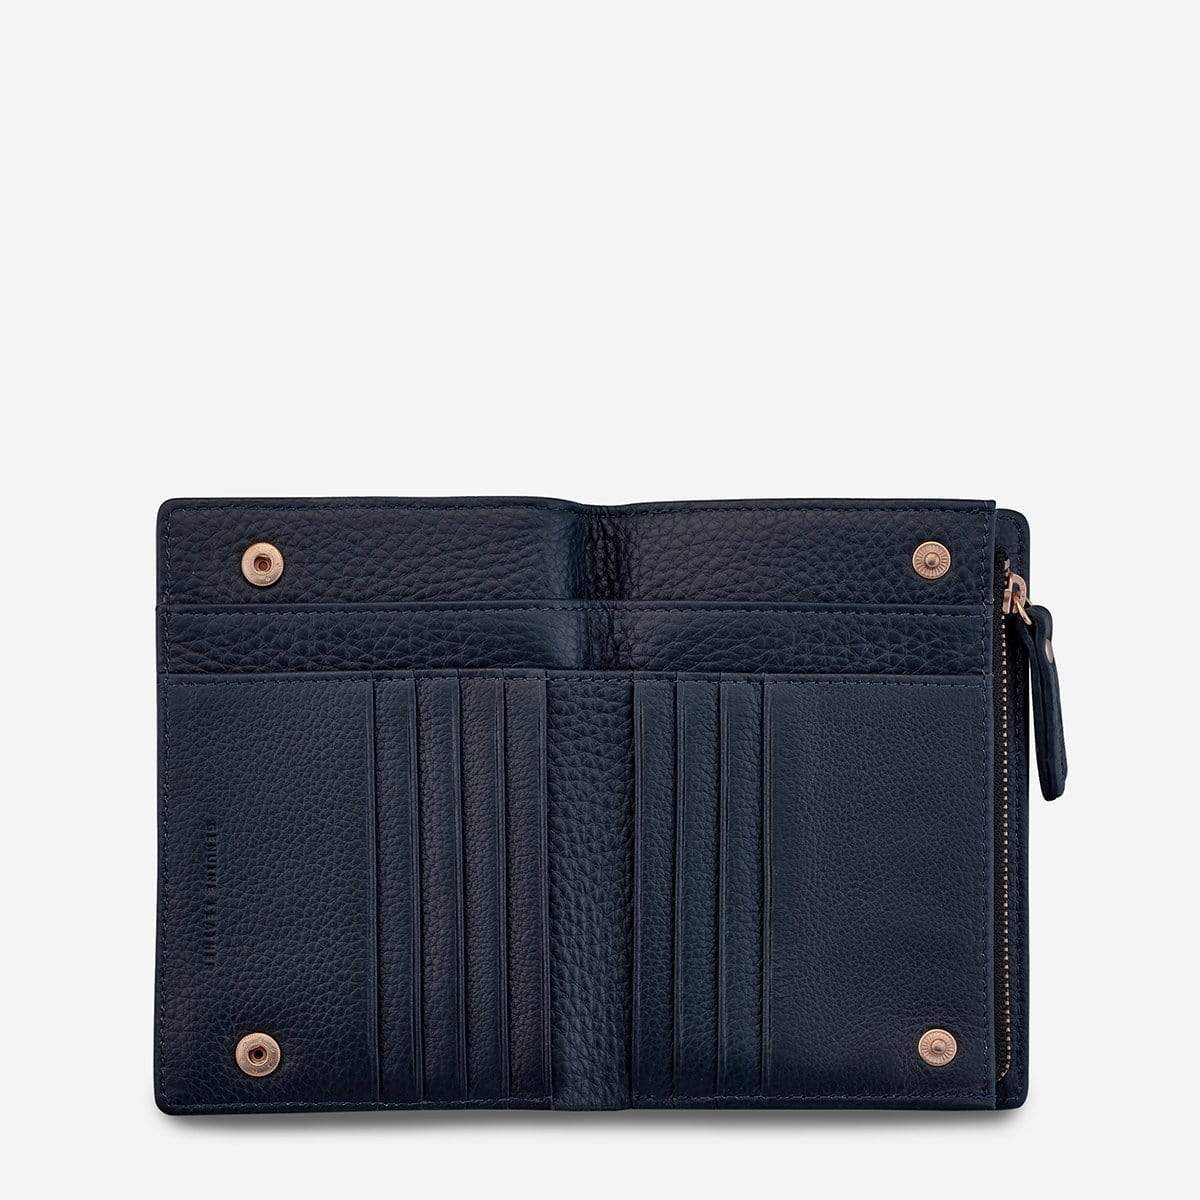 Status Anxiety Bags Status Anxiety | Insurgency Wallet - Navy Blue